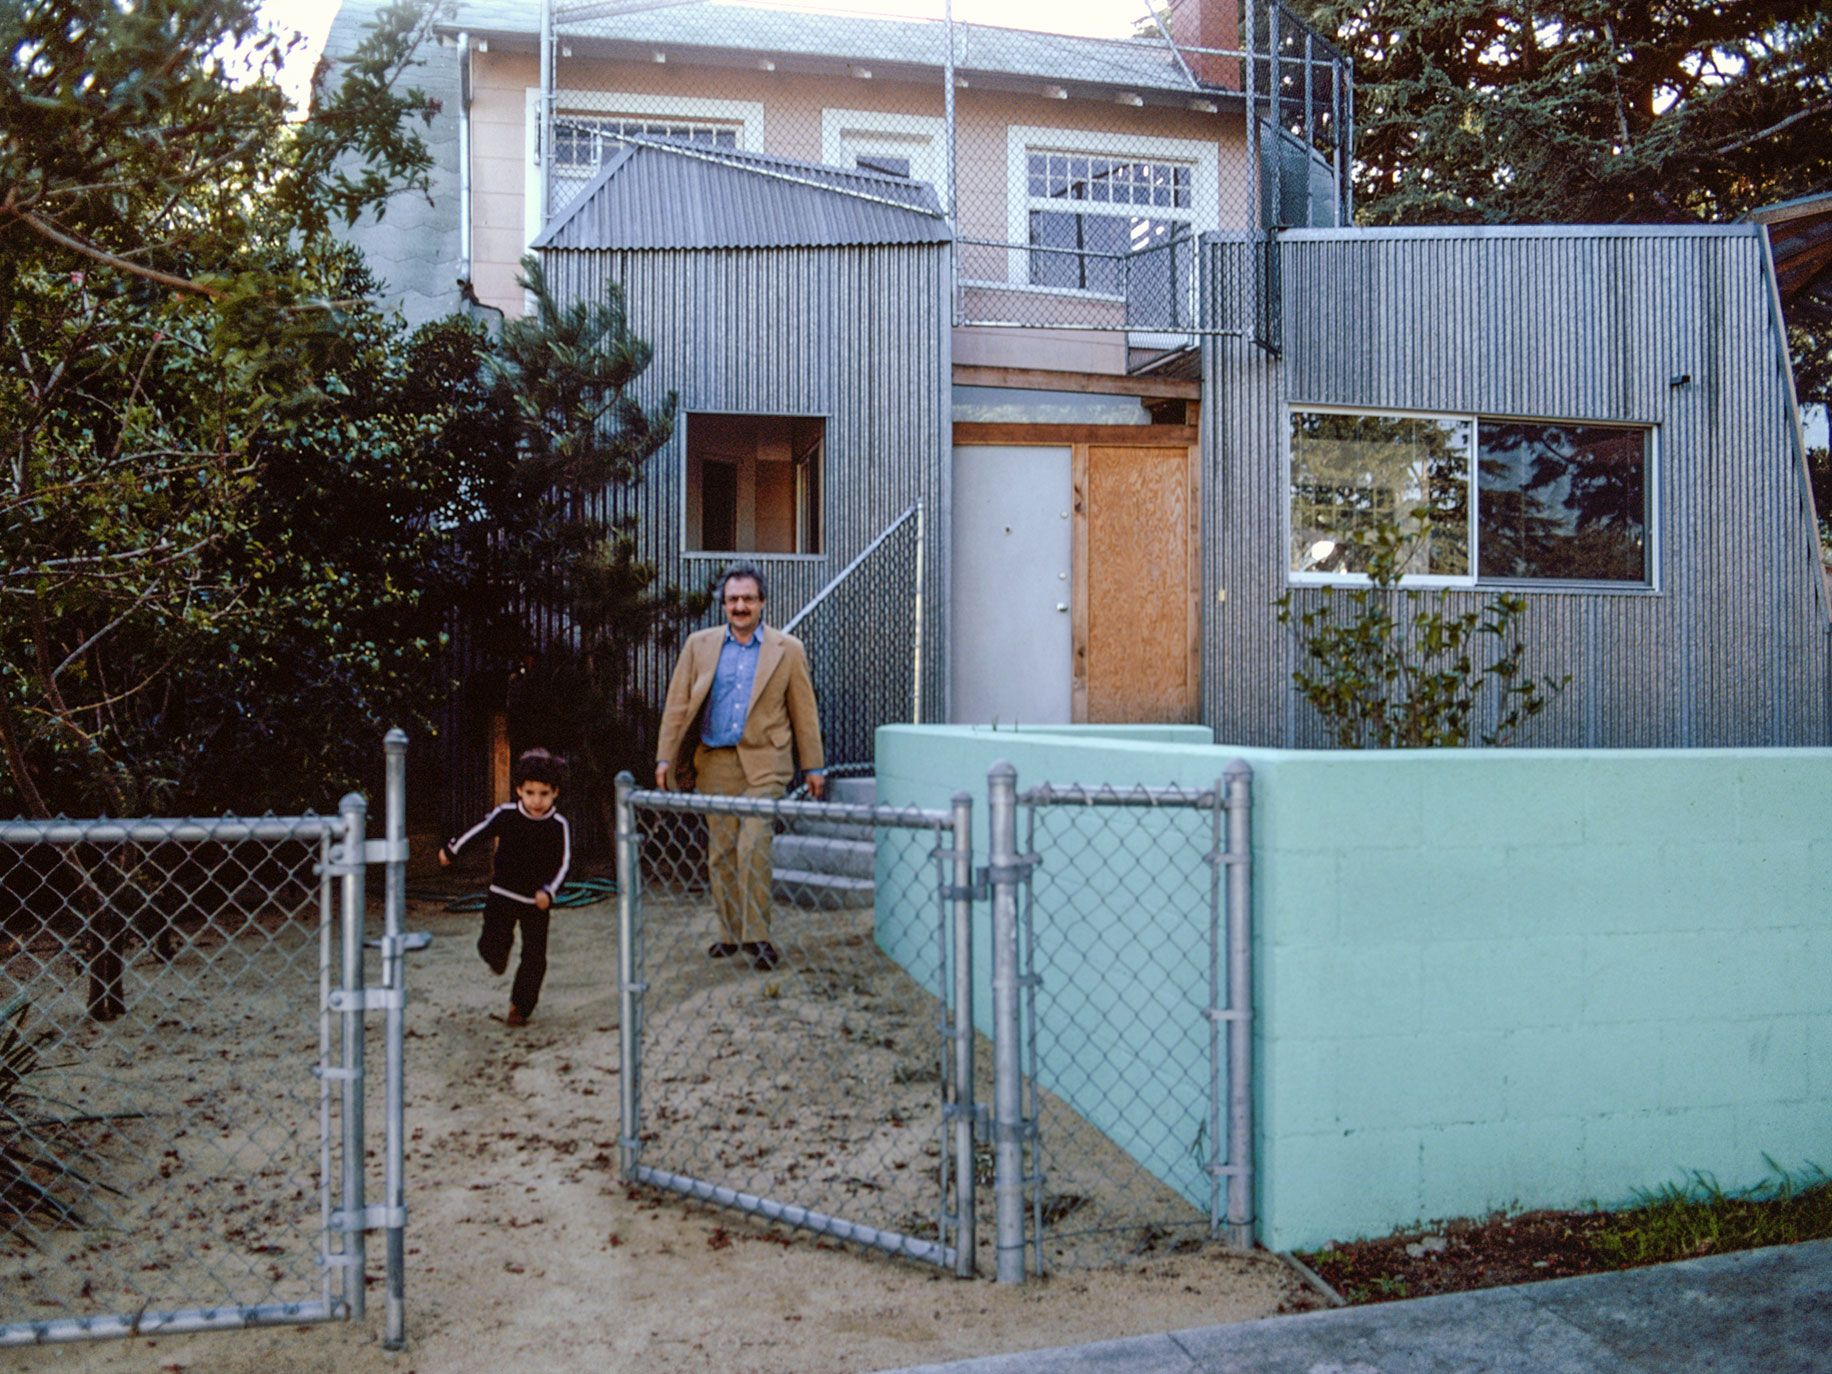 Gehry's self-designed home in Santa Monica, in 1980.